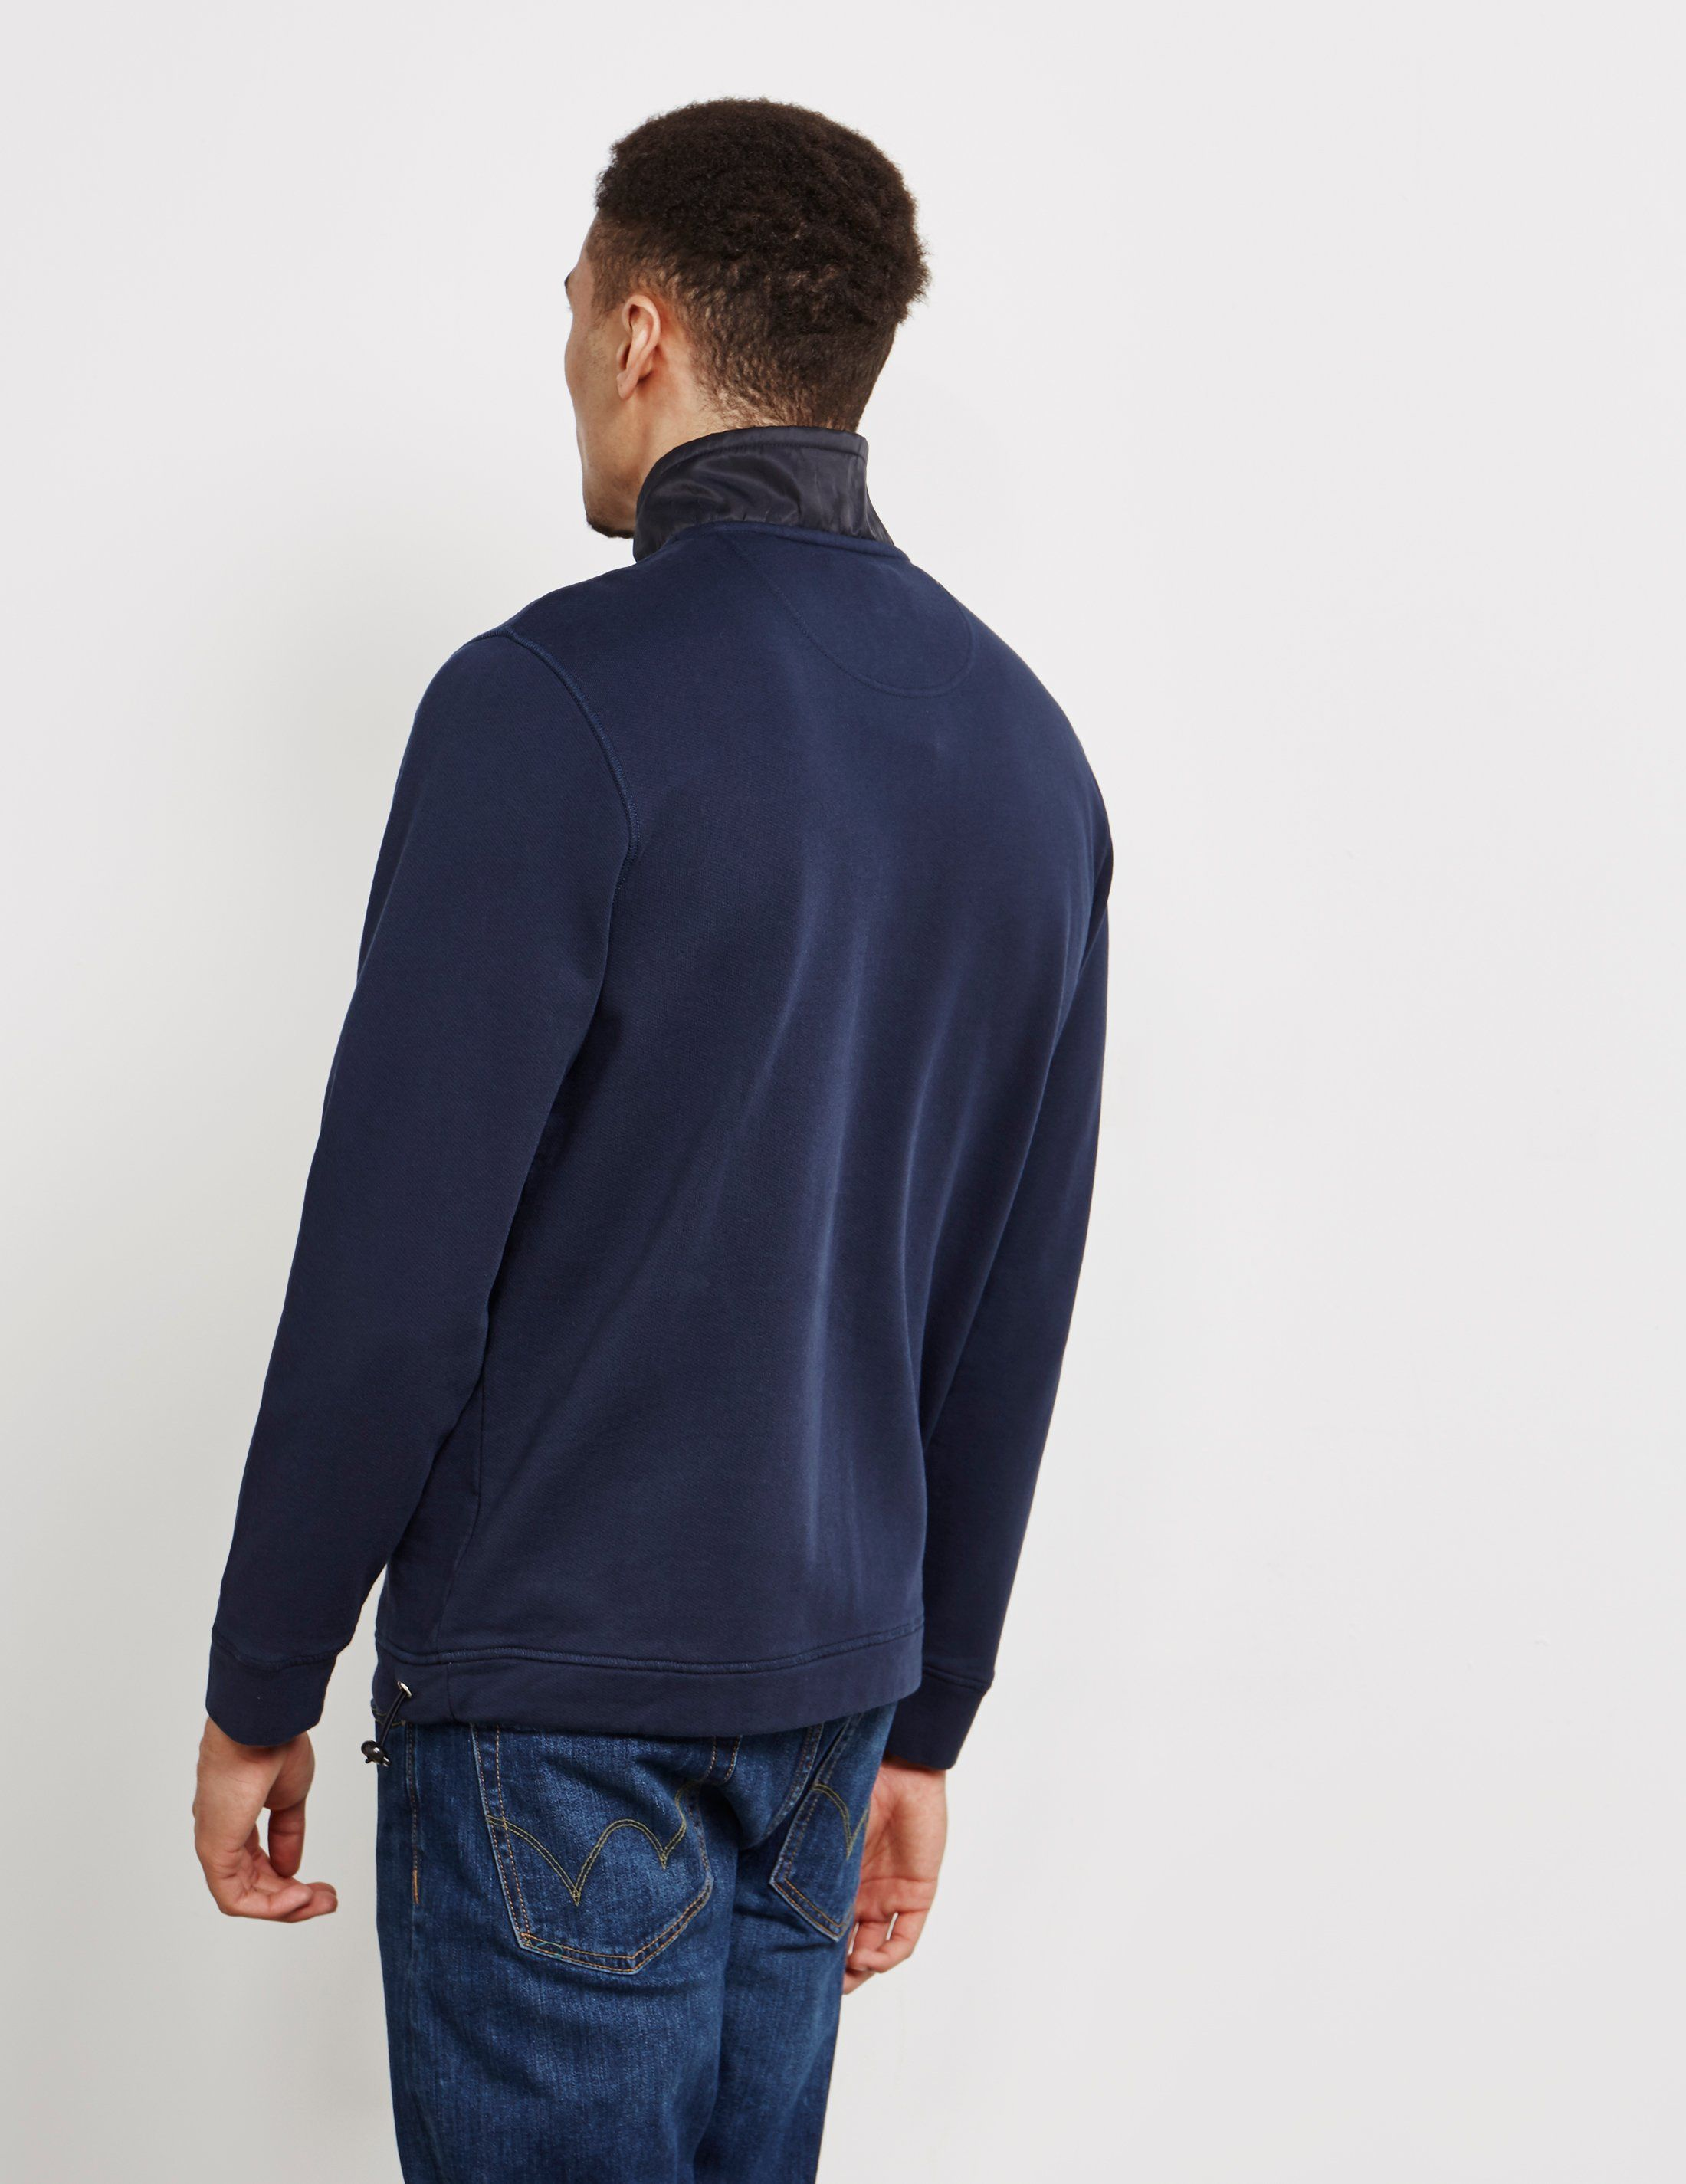 Barbour Seward Half Zip Sweatshirt